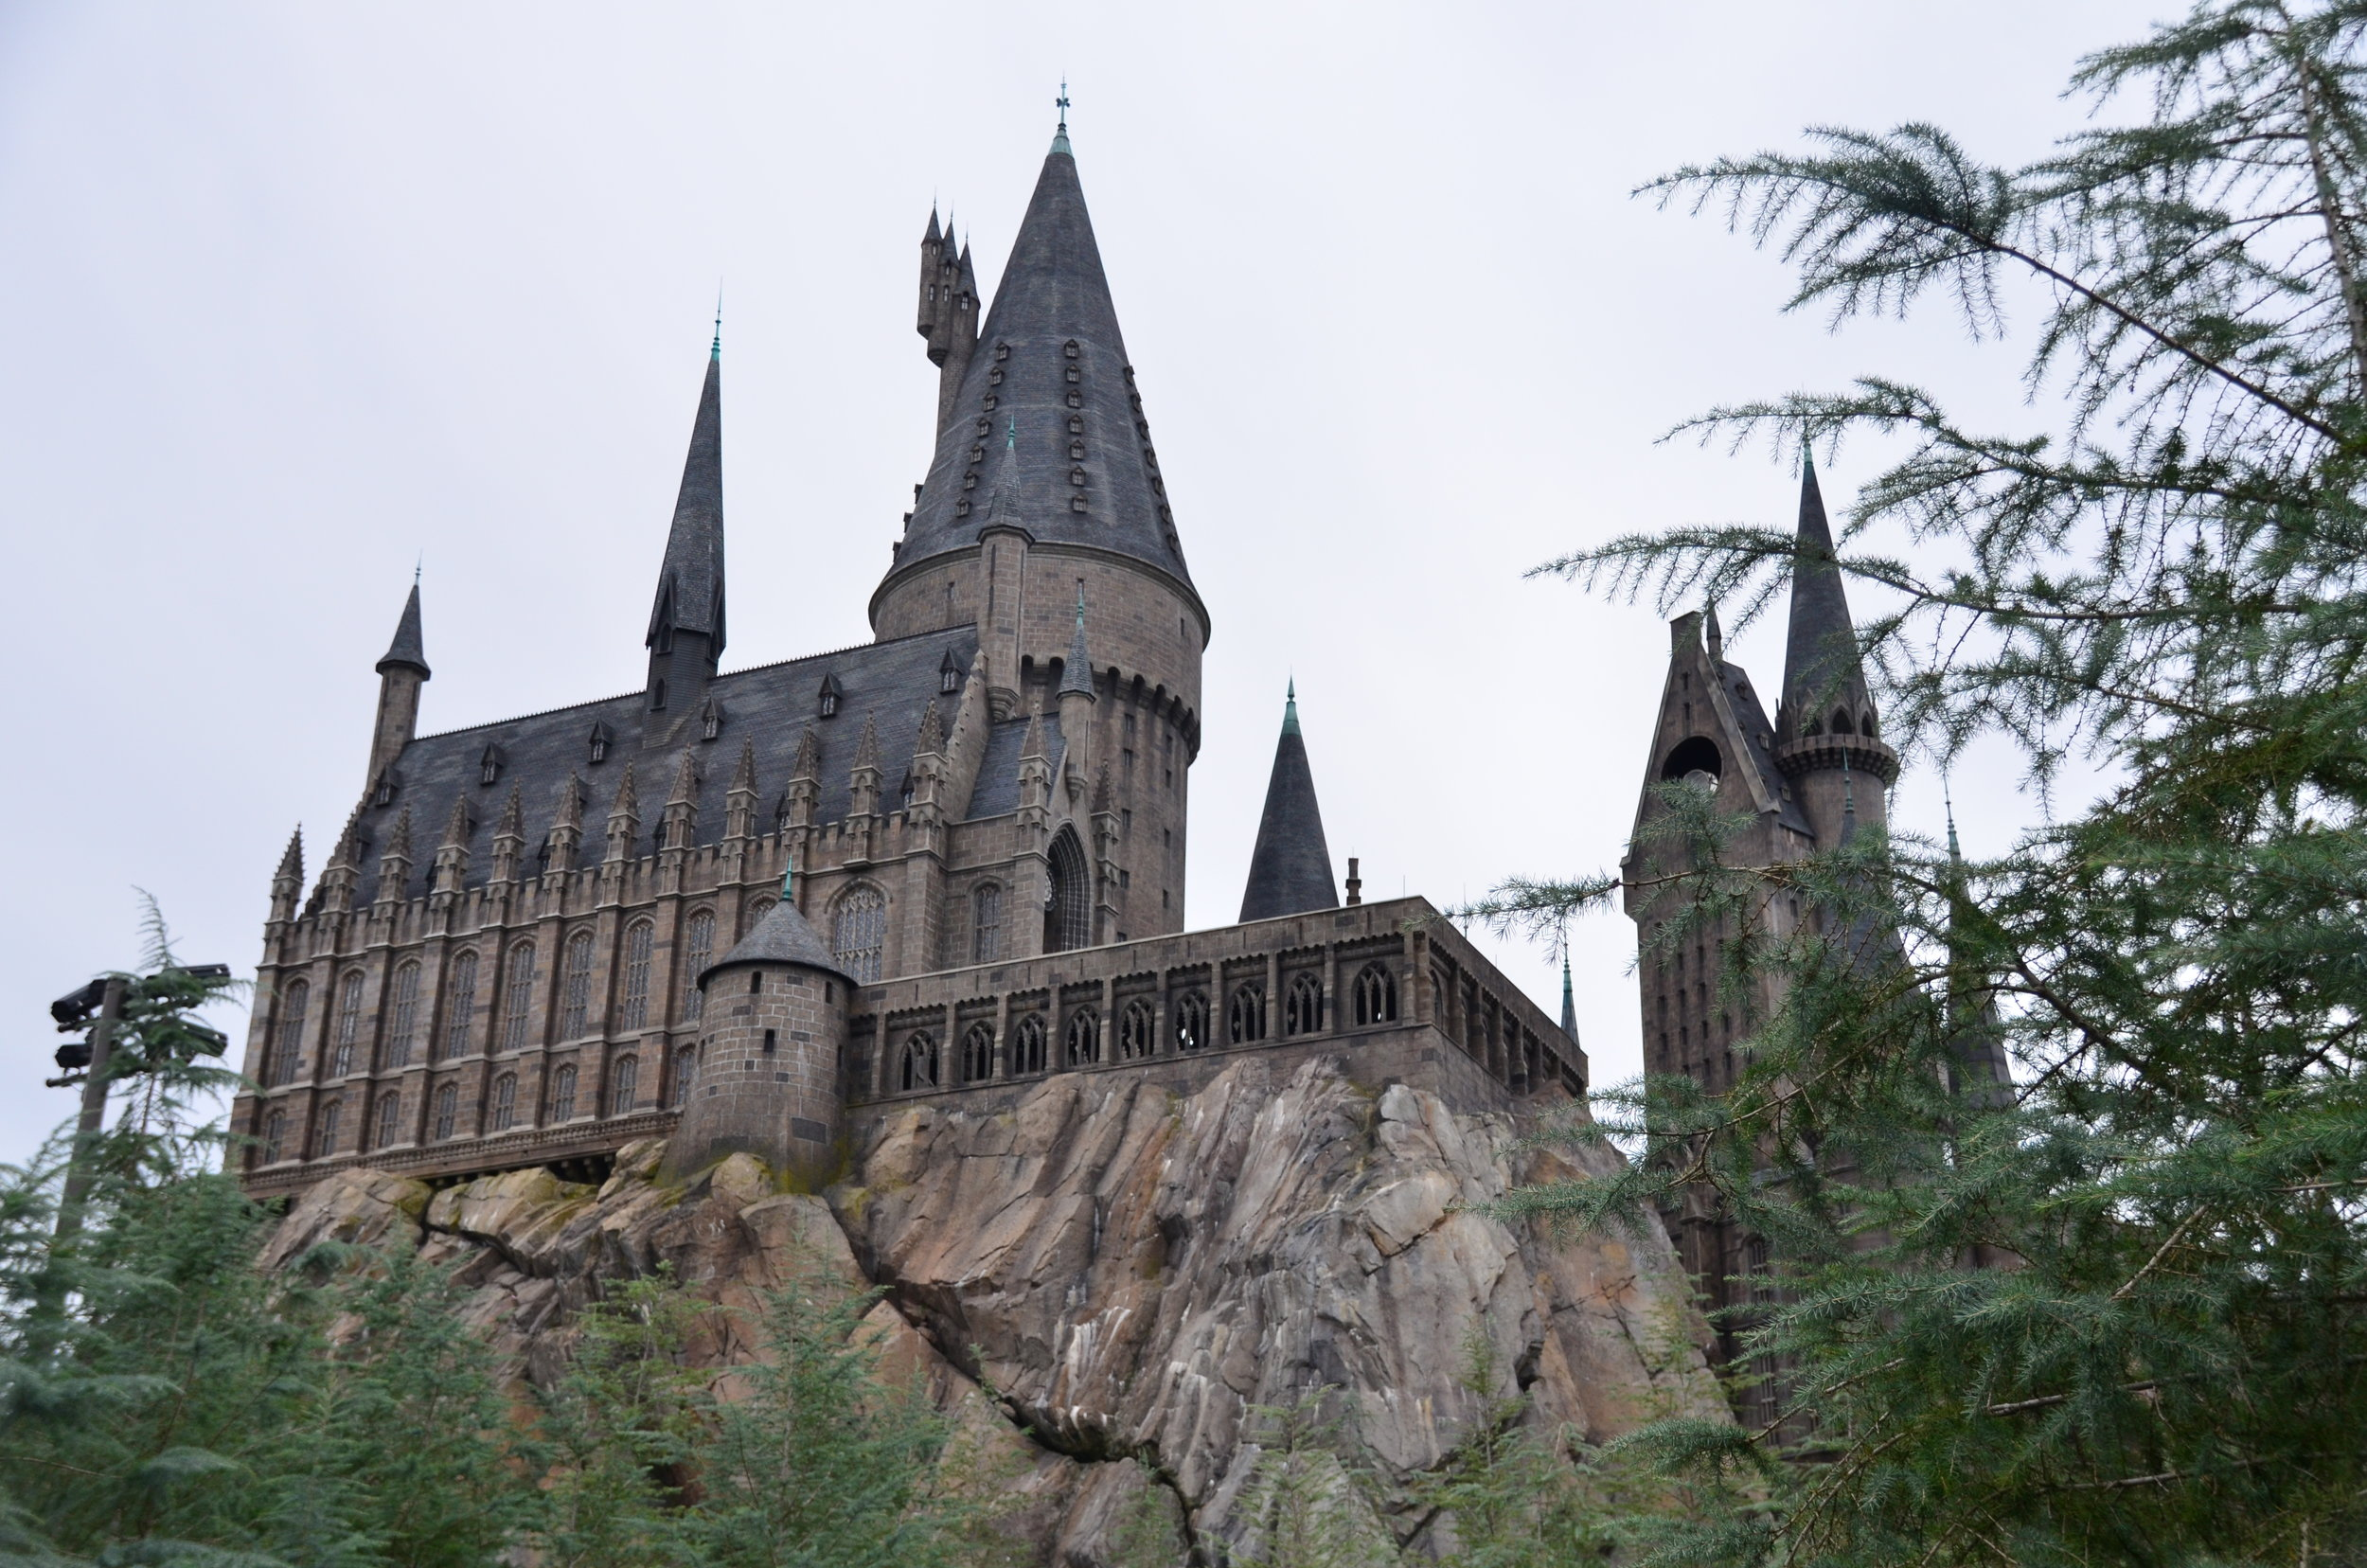 Harry Potter Land.jpg